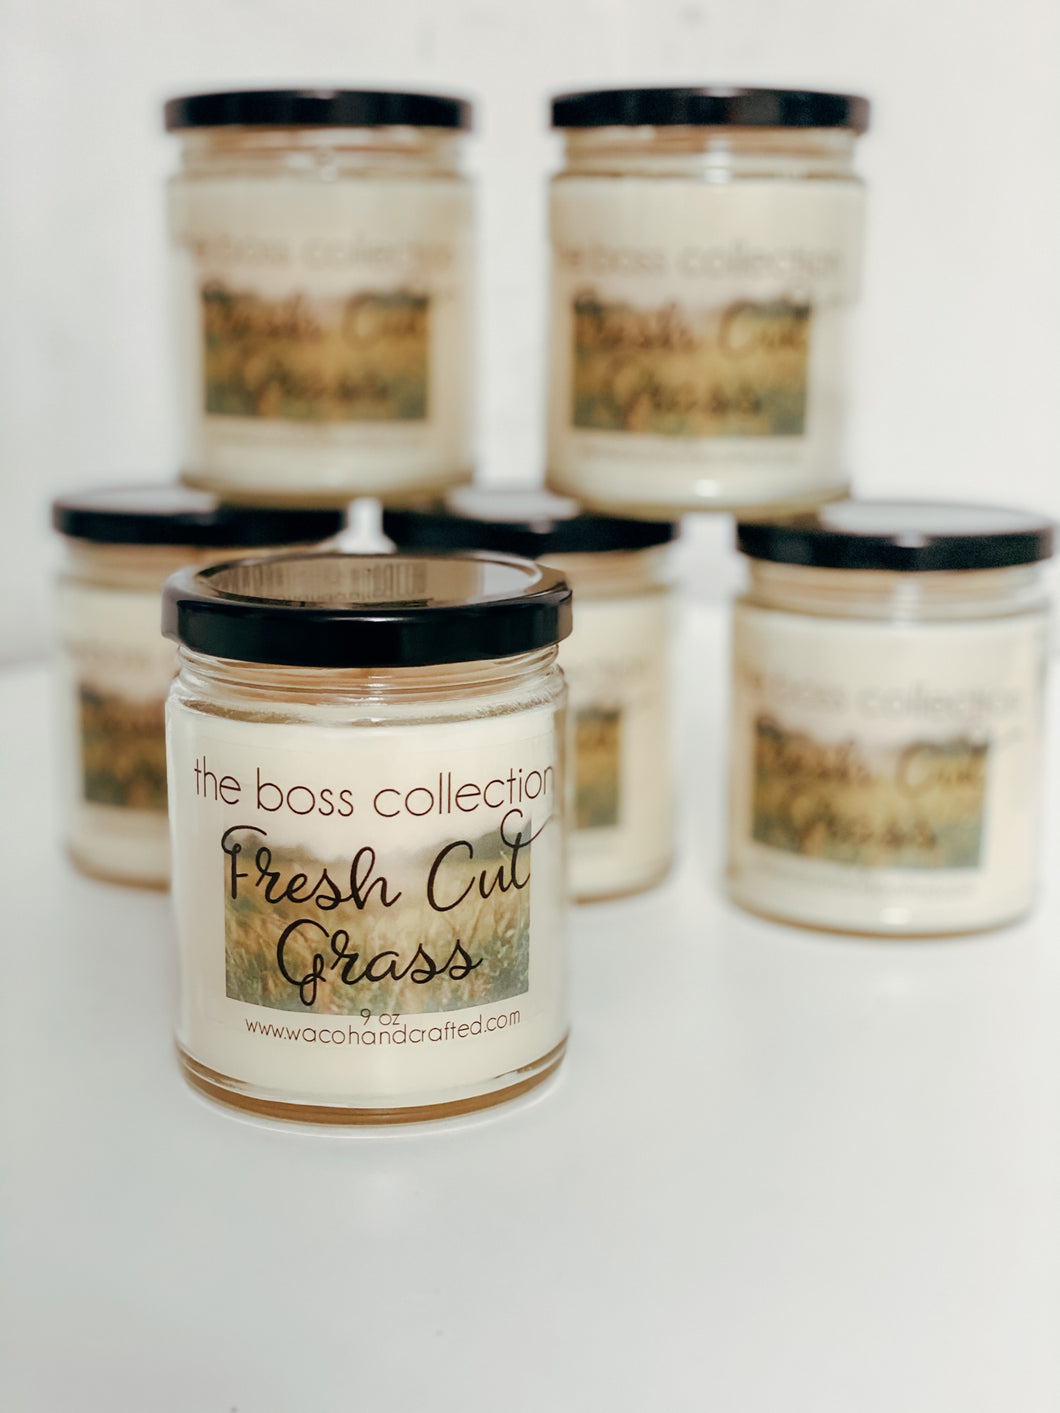 Fresh Cut Grass 9 oz Scented Candle - Waco Handcrafted